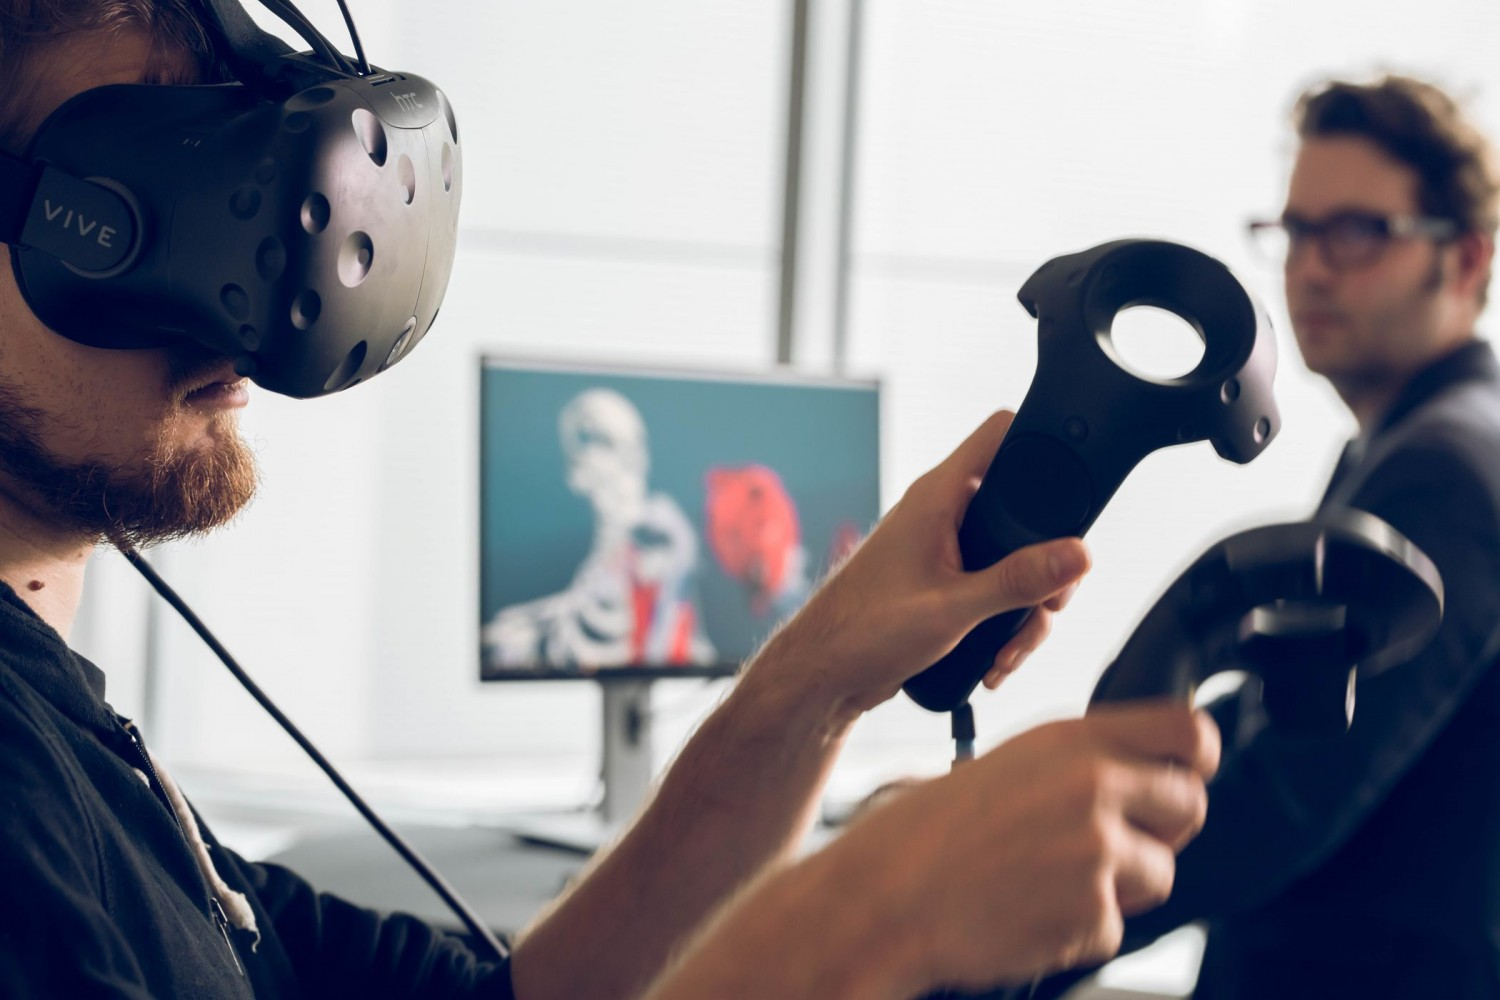 Virtual Reality (VR) can play a role for for medical training and education applications in hospitals